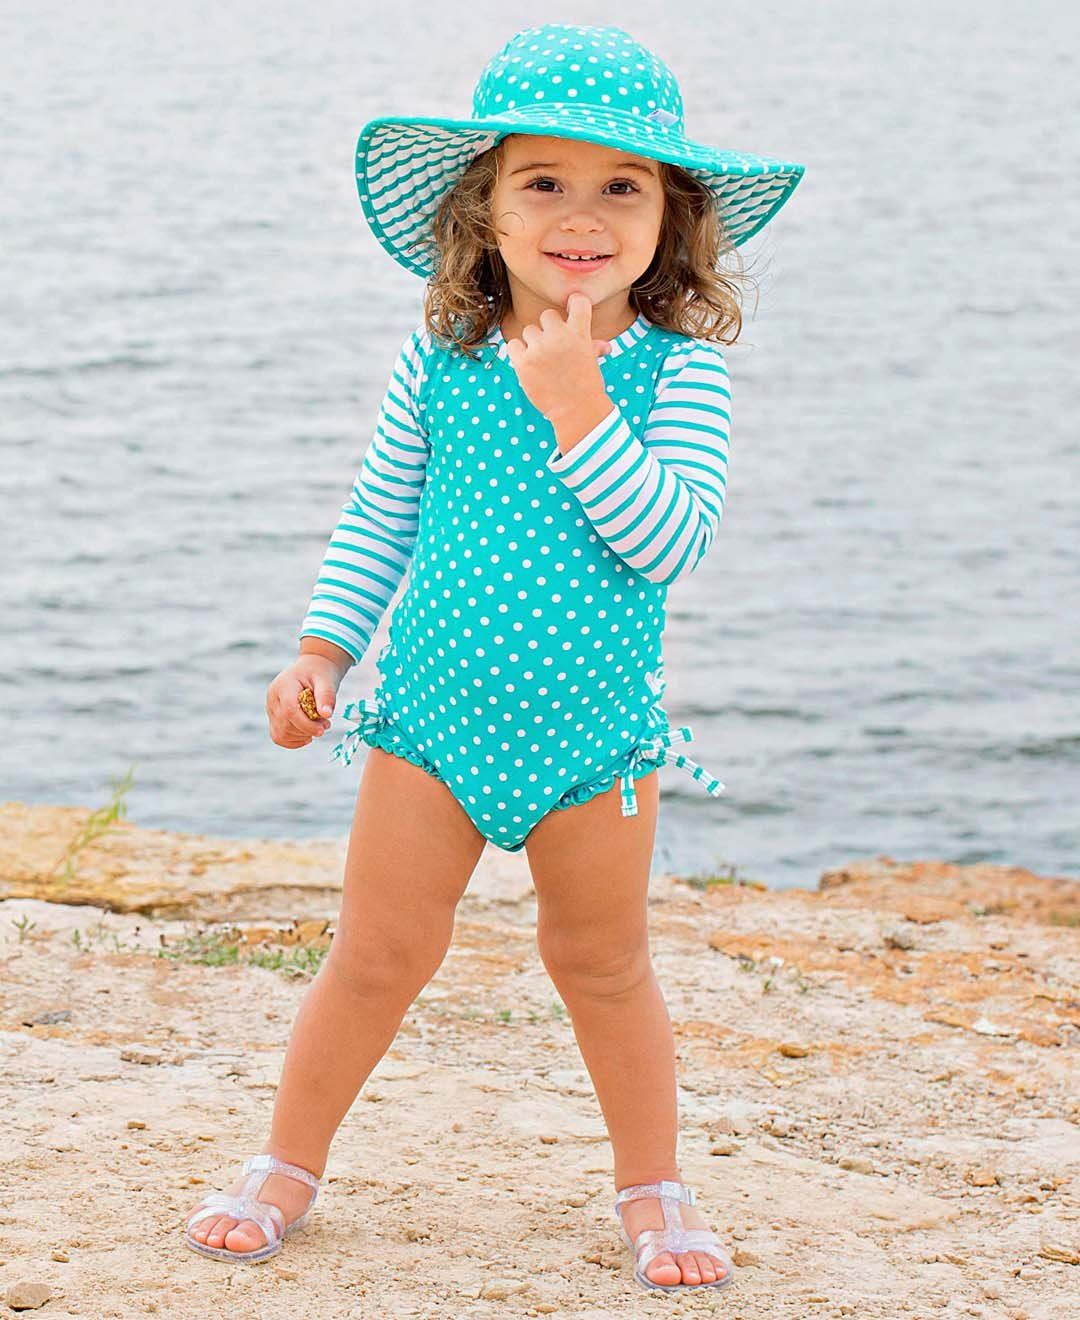 dda546f41 RuffleButts Baby/Toddler Girls Long Sleeve One Piece Swimsuit Aqua Polka Dot  with UPF 50 Sun Protection 36m * Inspect this remarkable item by going to  the ...